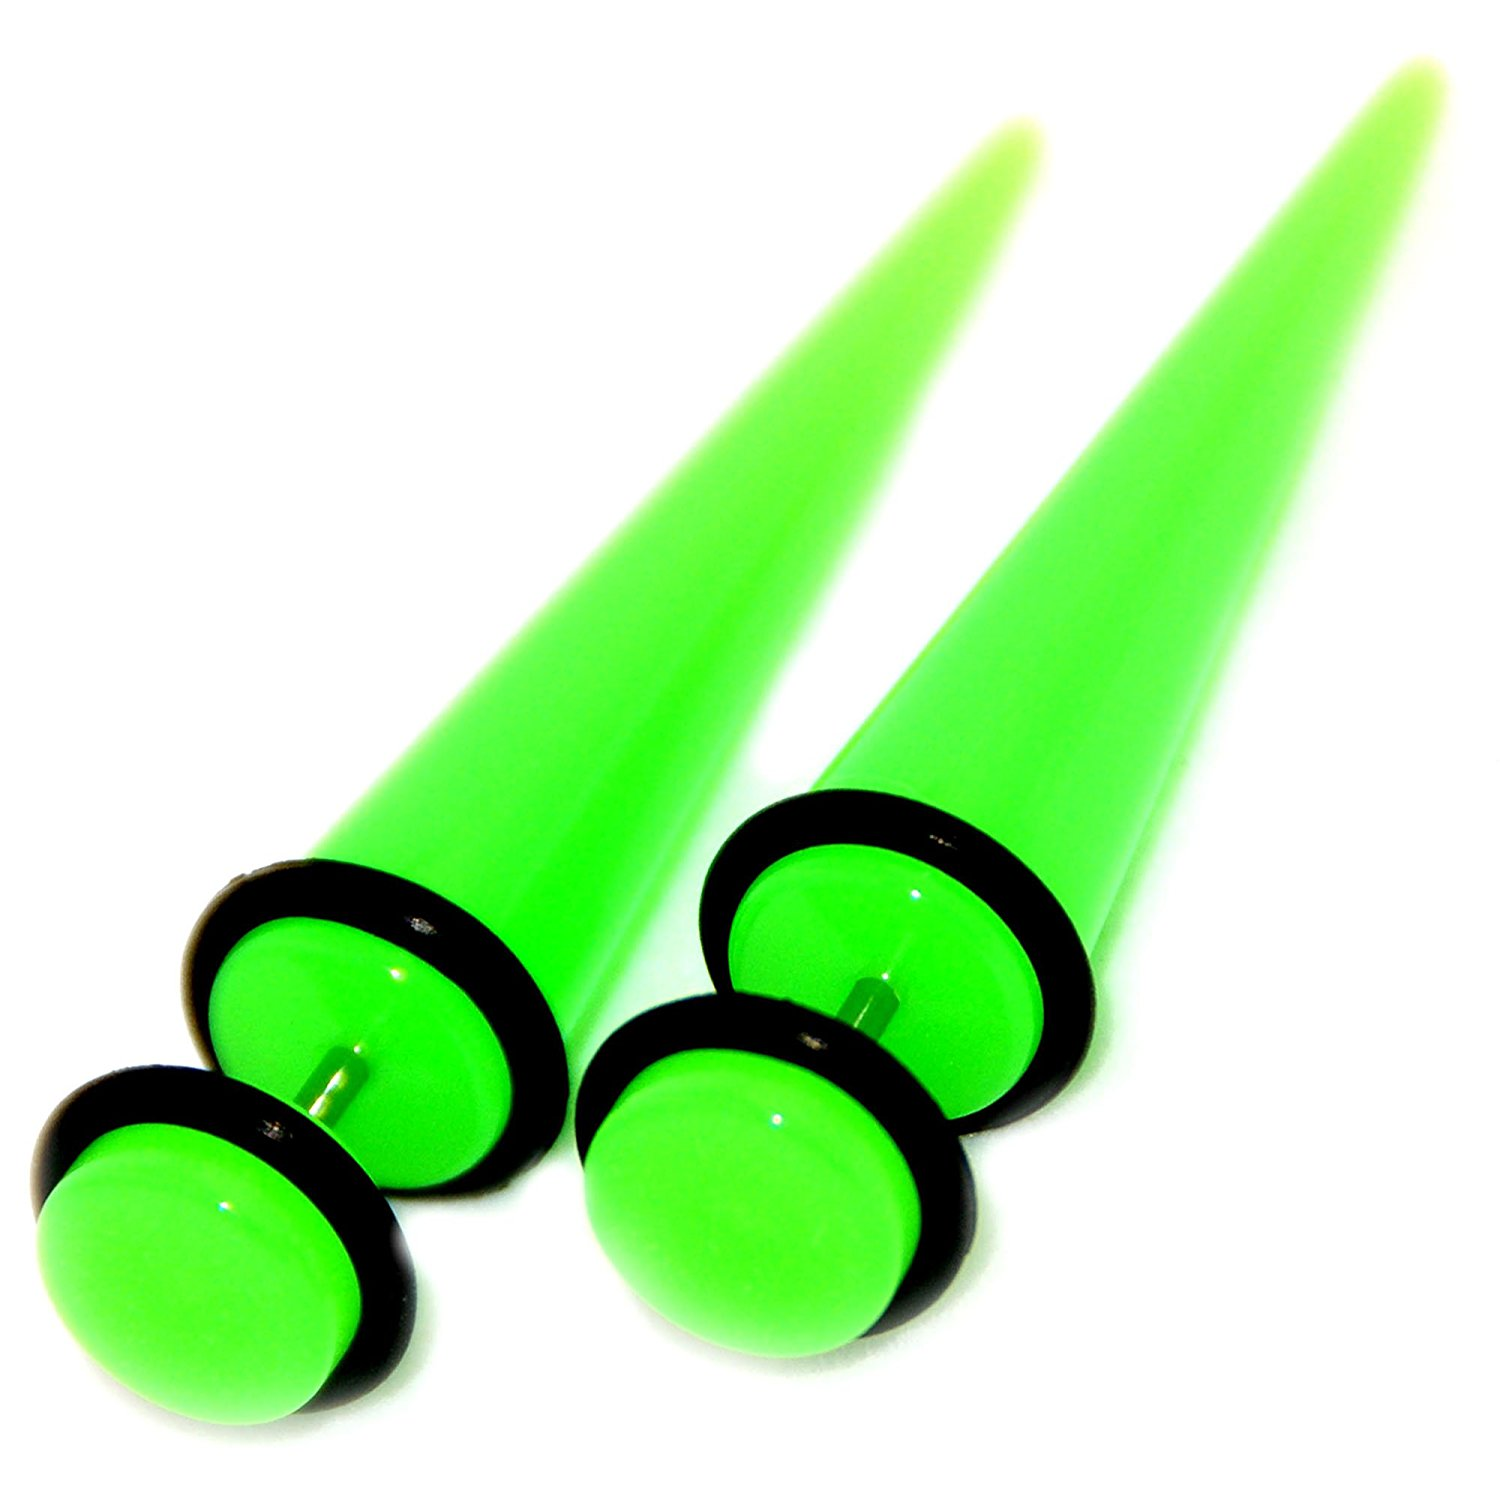 1 PAIR LARGE Neon Acrylic Tapers Expanders Gauges Pink Blue Green Purple Yellow